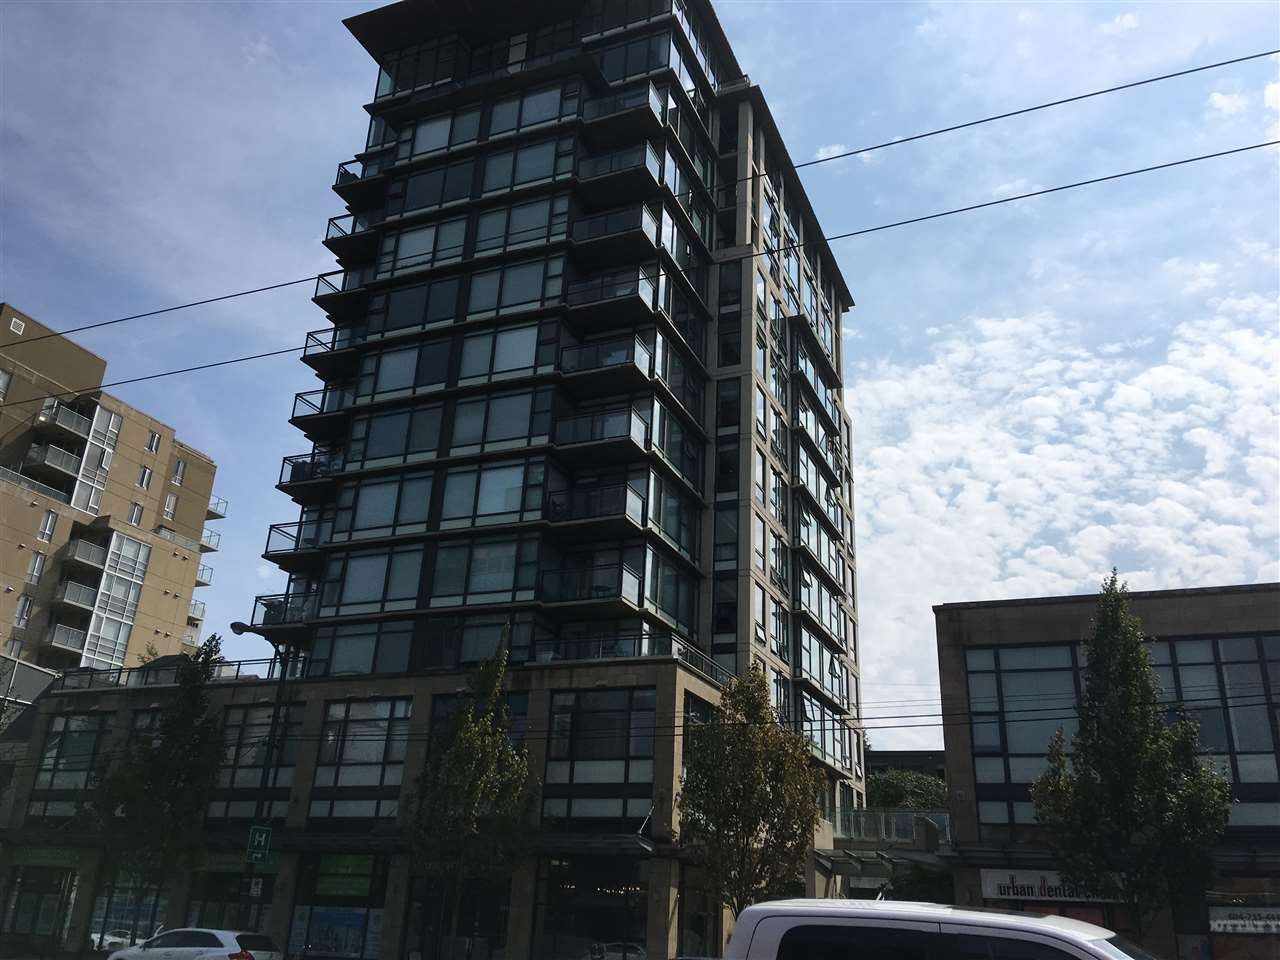 Condo Apartment at 1009 1068 W BROADWAY, Unit 1009, Vancouver West, British Columbia. Image 1